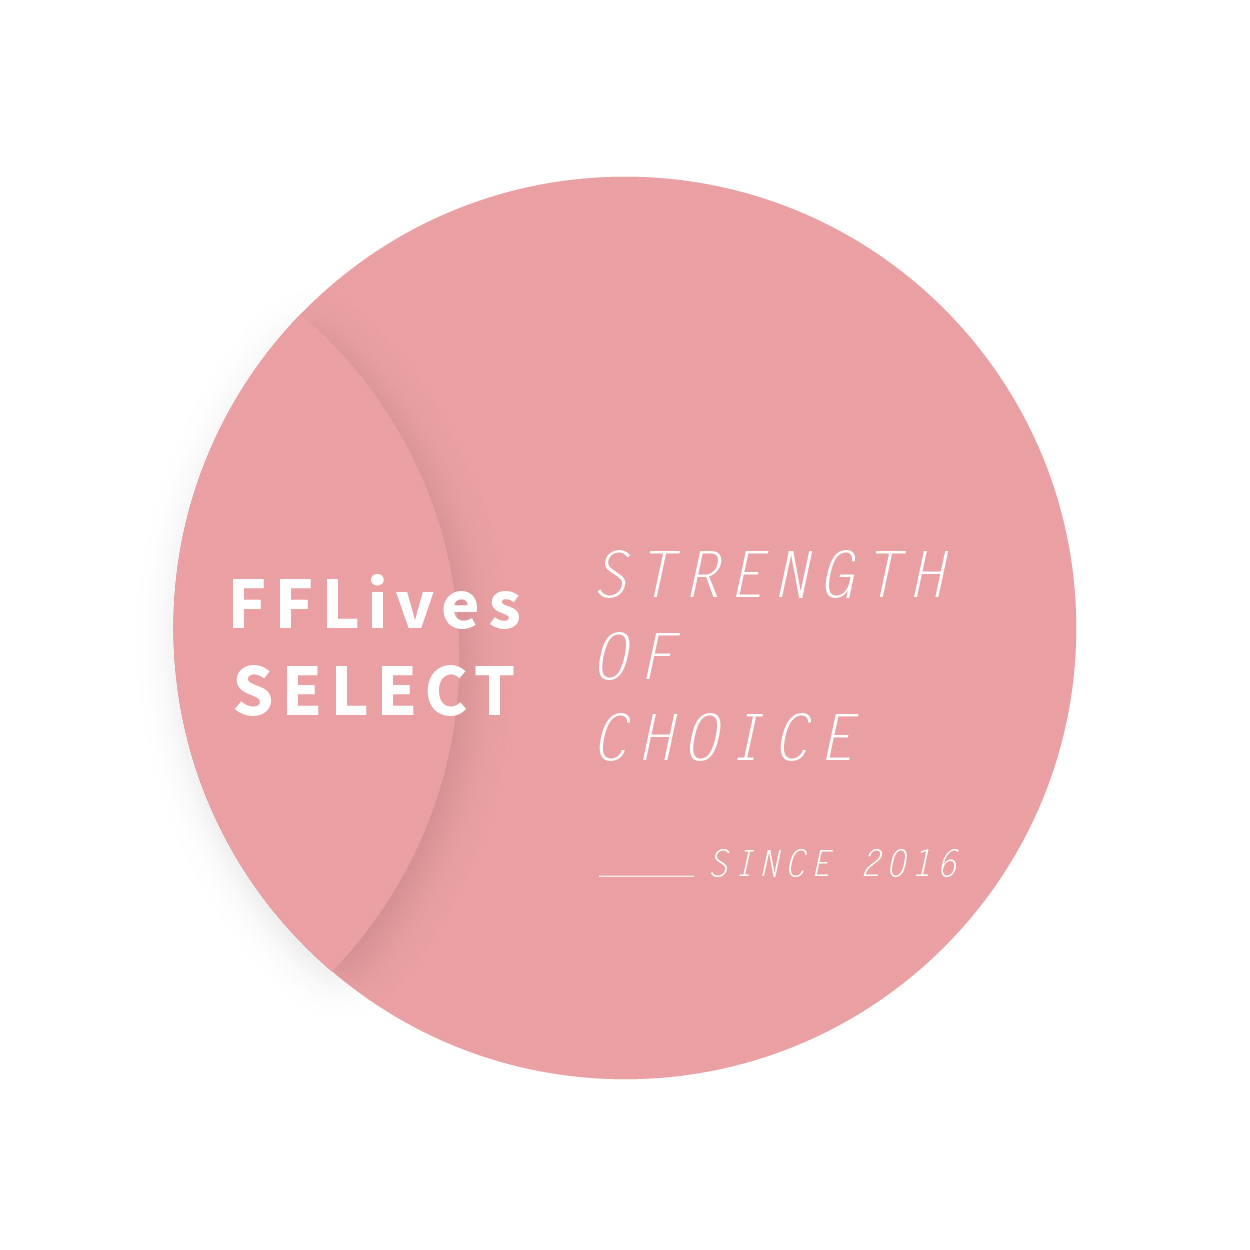 FFLives Select